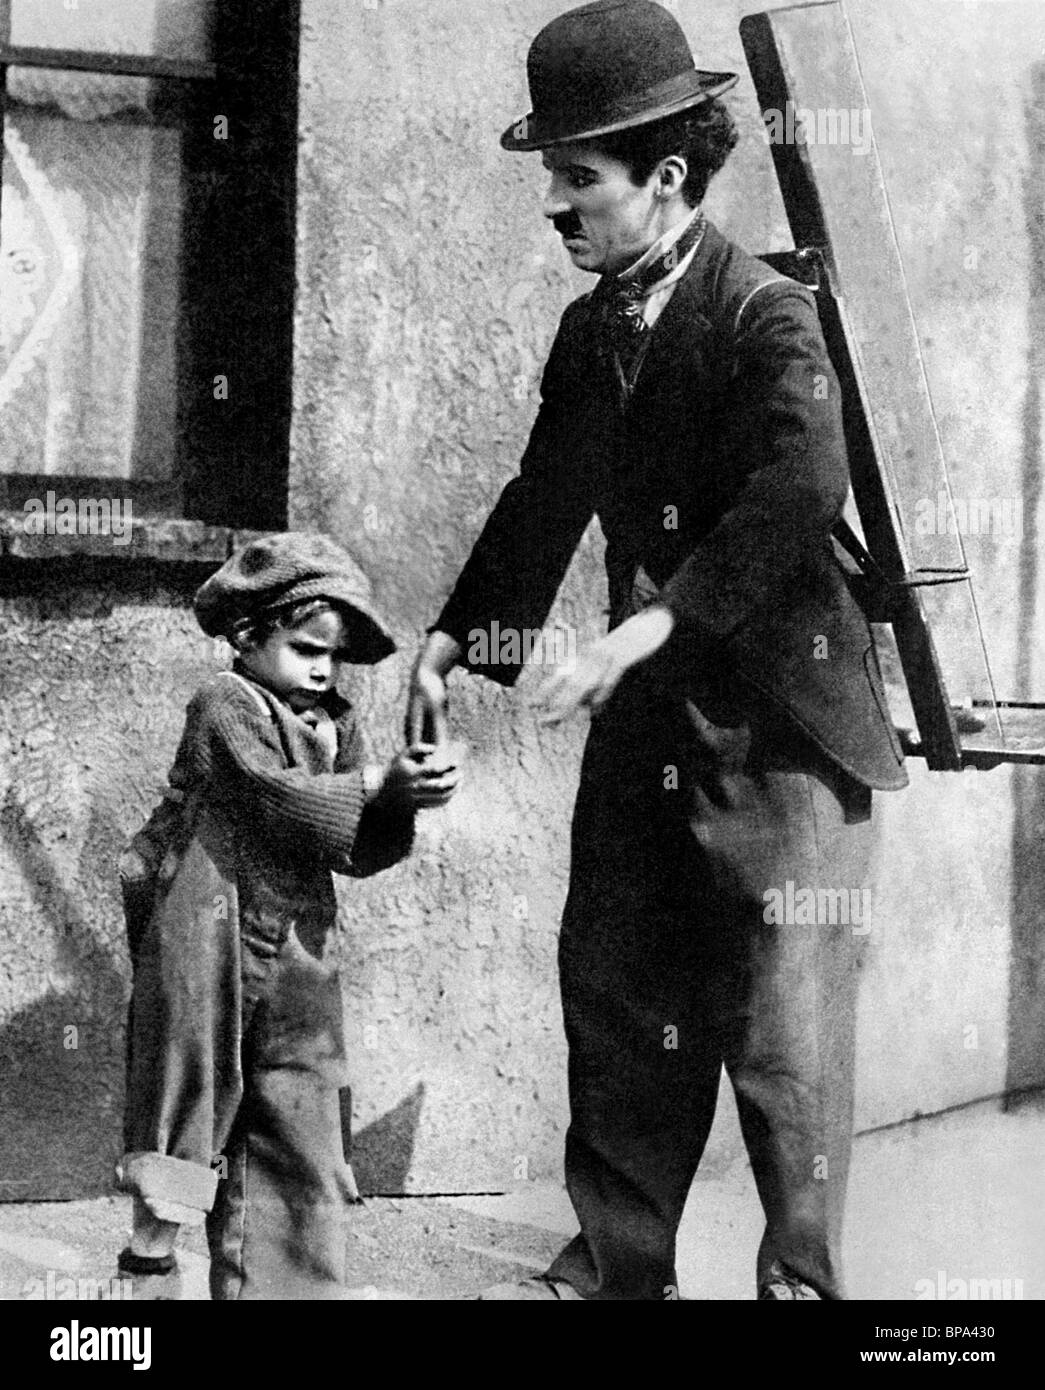 charlie chaplin the kid essay Synopsis of the kid exactly as written by the chaplin studio in 1921 by listing the cast simply as the man, the woman, the tramp and the policeman, we have already the constituent elements of a drama.